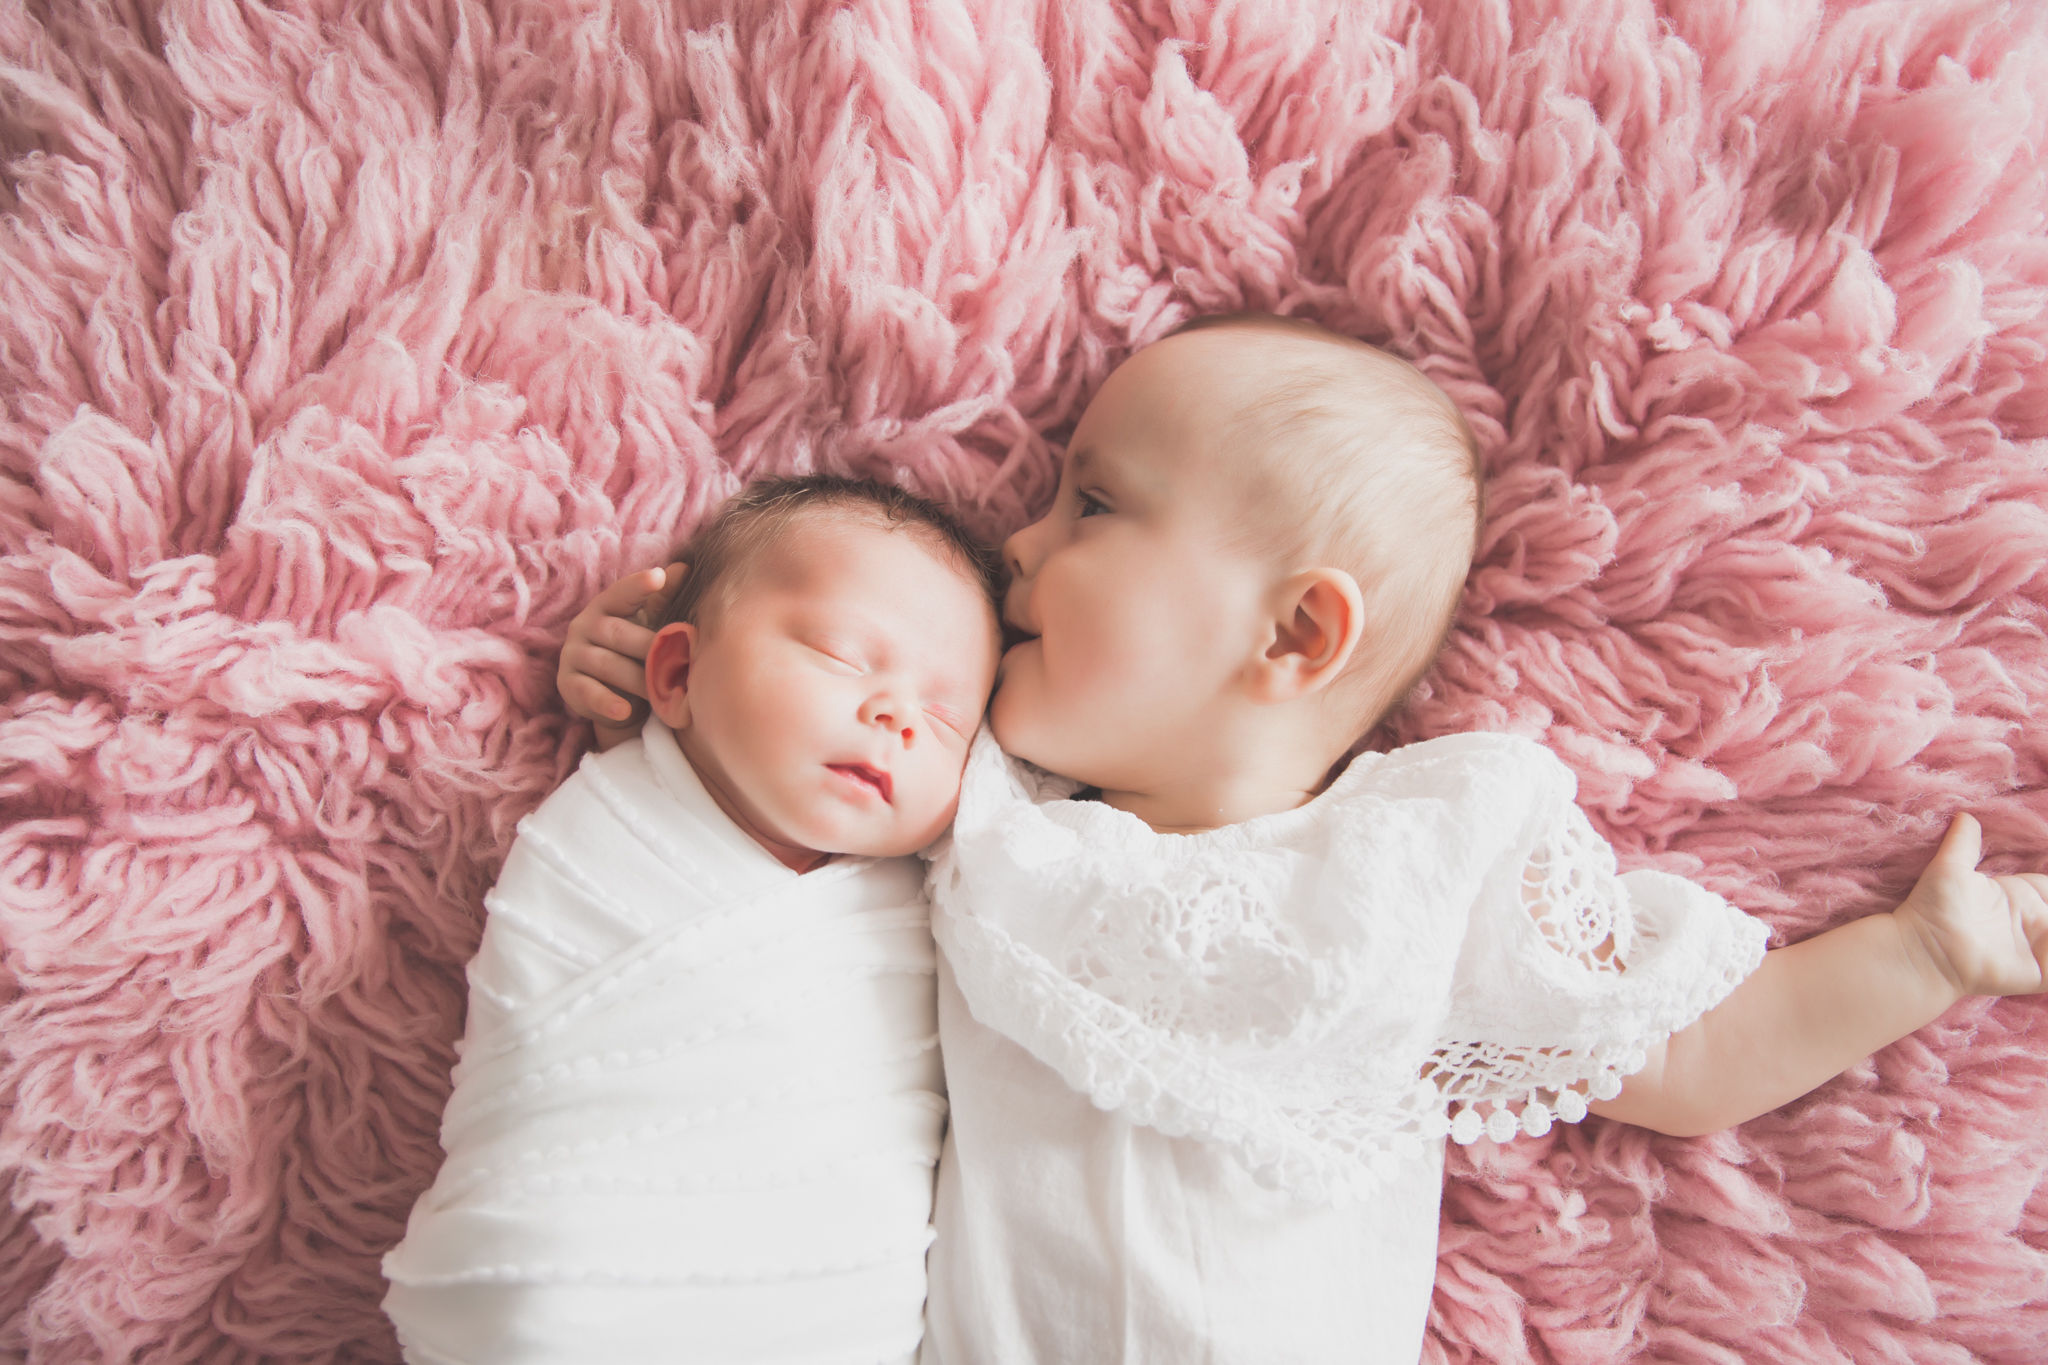 Sibling photos Newborn session photographer lifestyle studio - Cara Peterson Photography Rockford IL-3-5.jpg